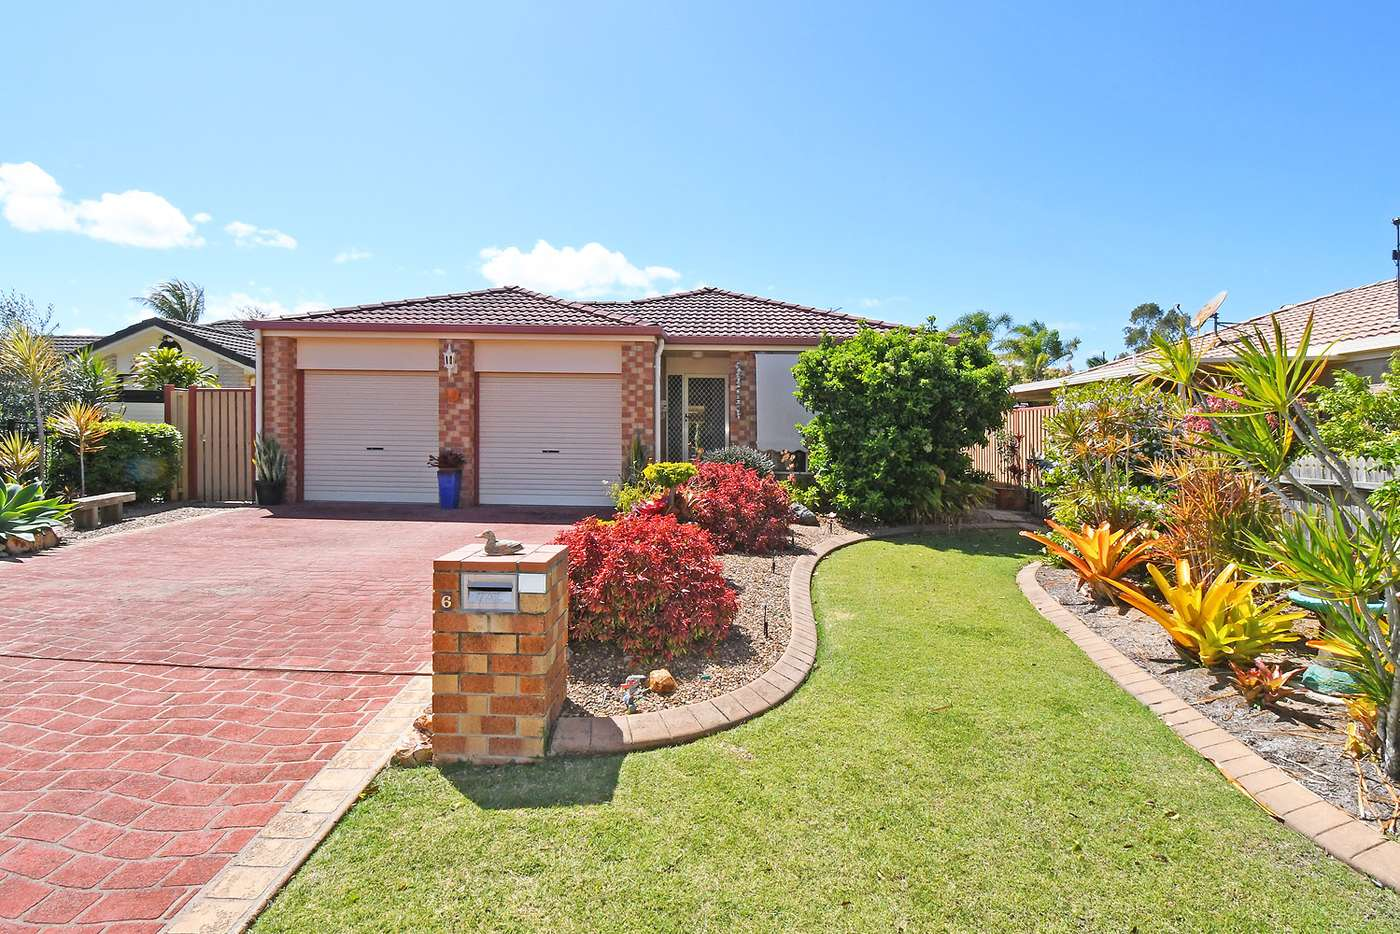 Main view of Homely house listing, 6 Jonwest Close, Torquay QLD 4655